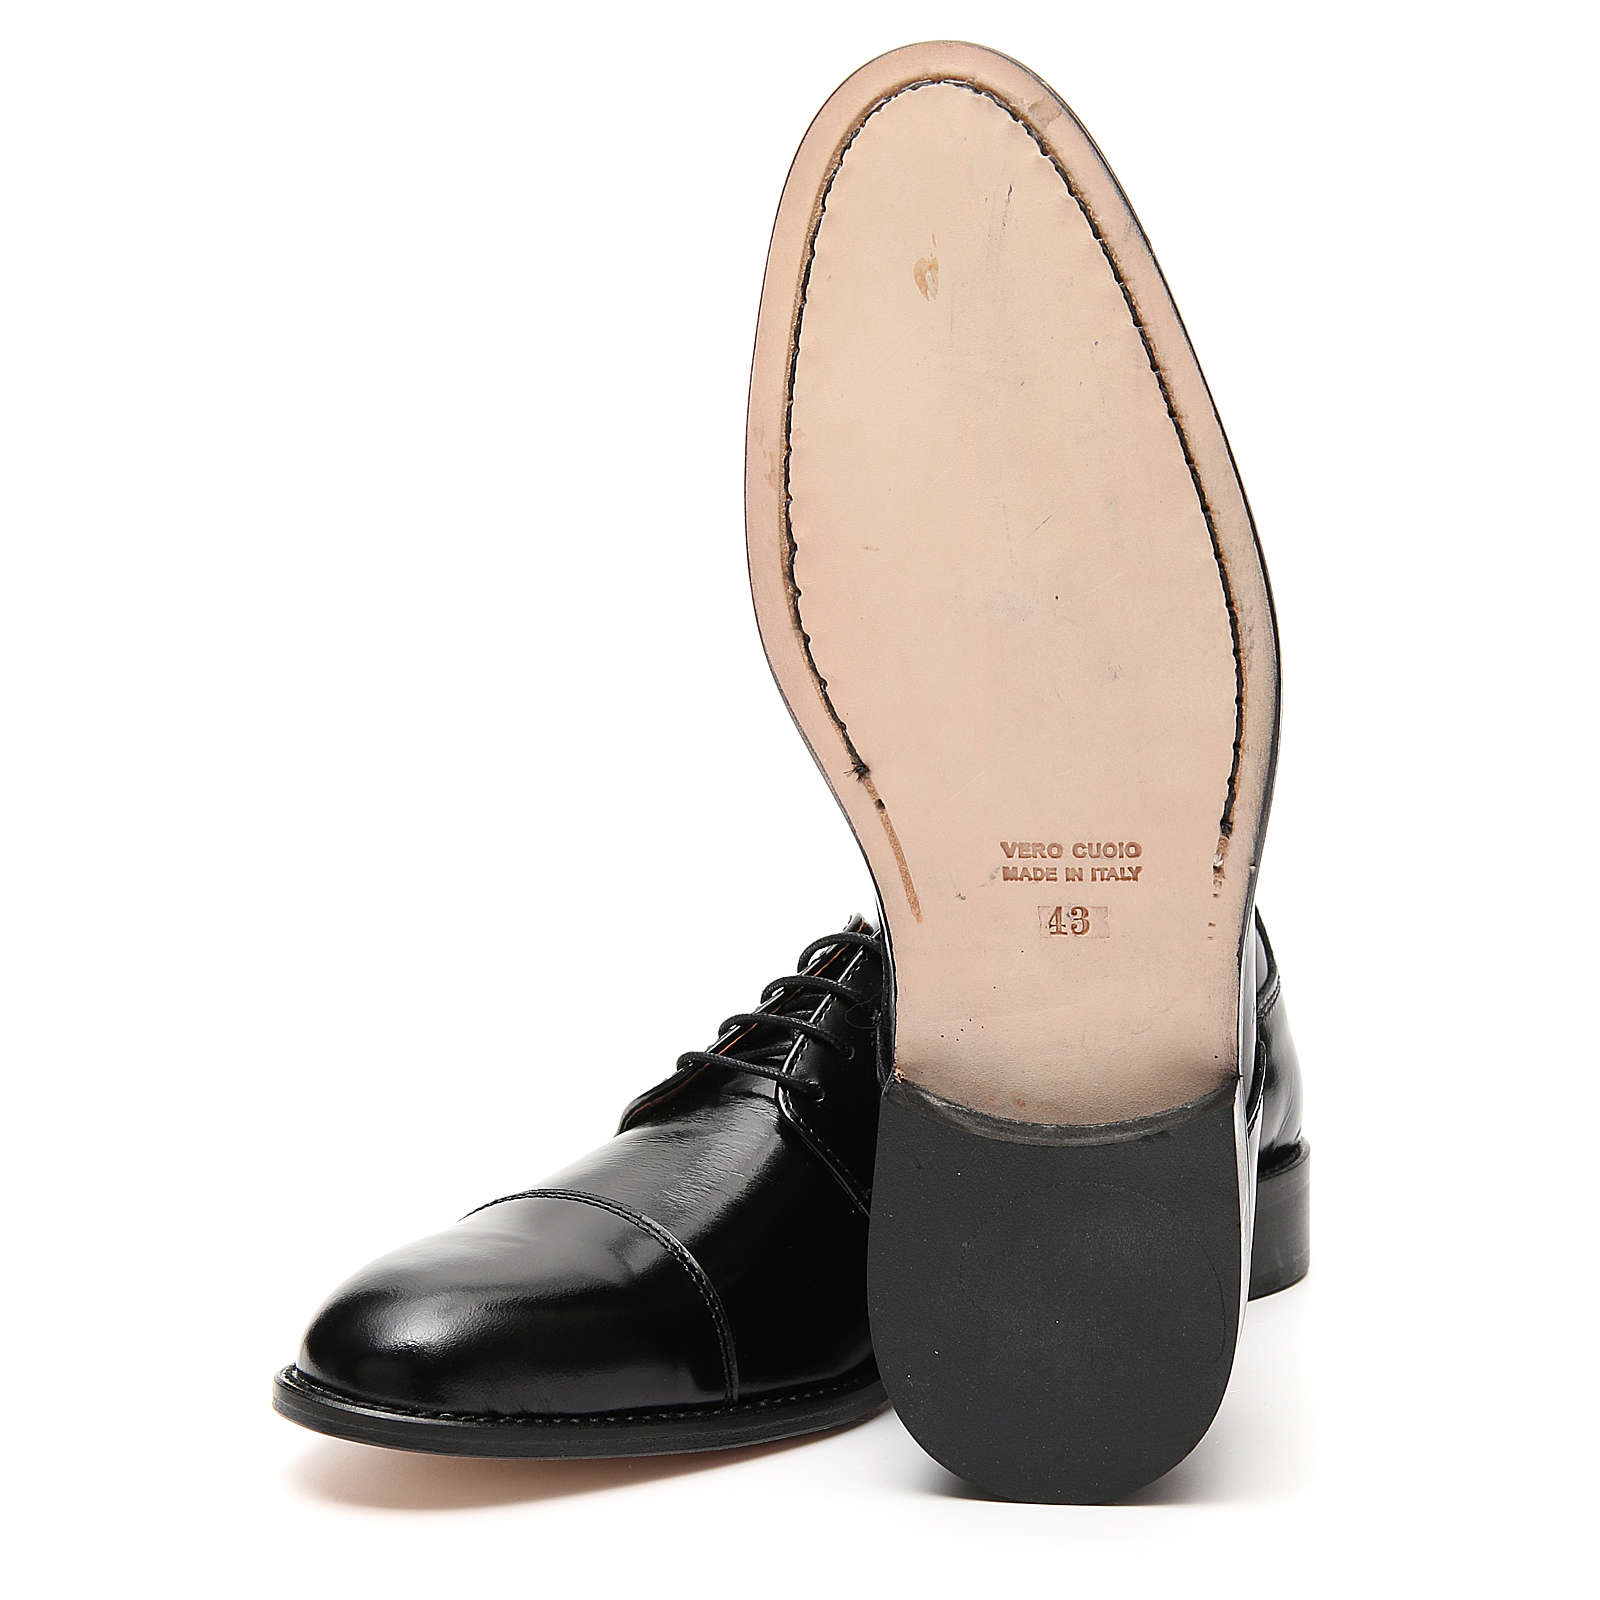 Shoes in polished real leather, toe cut 4